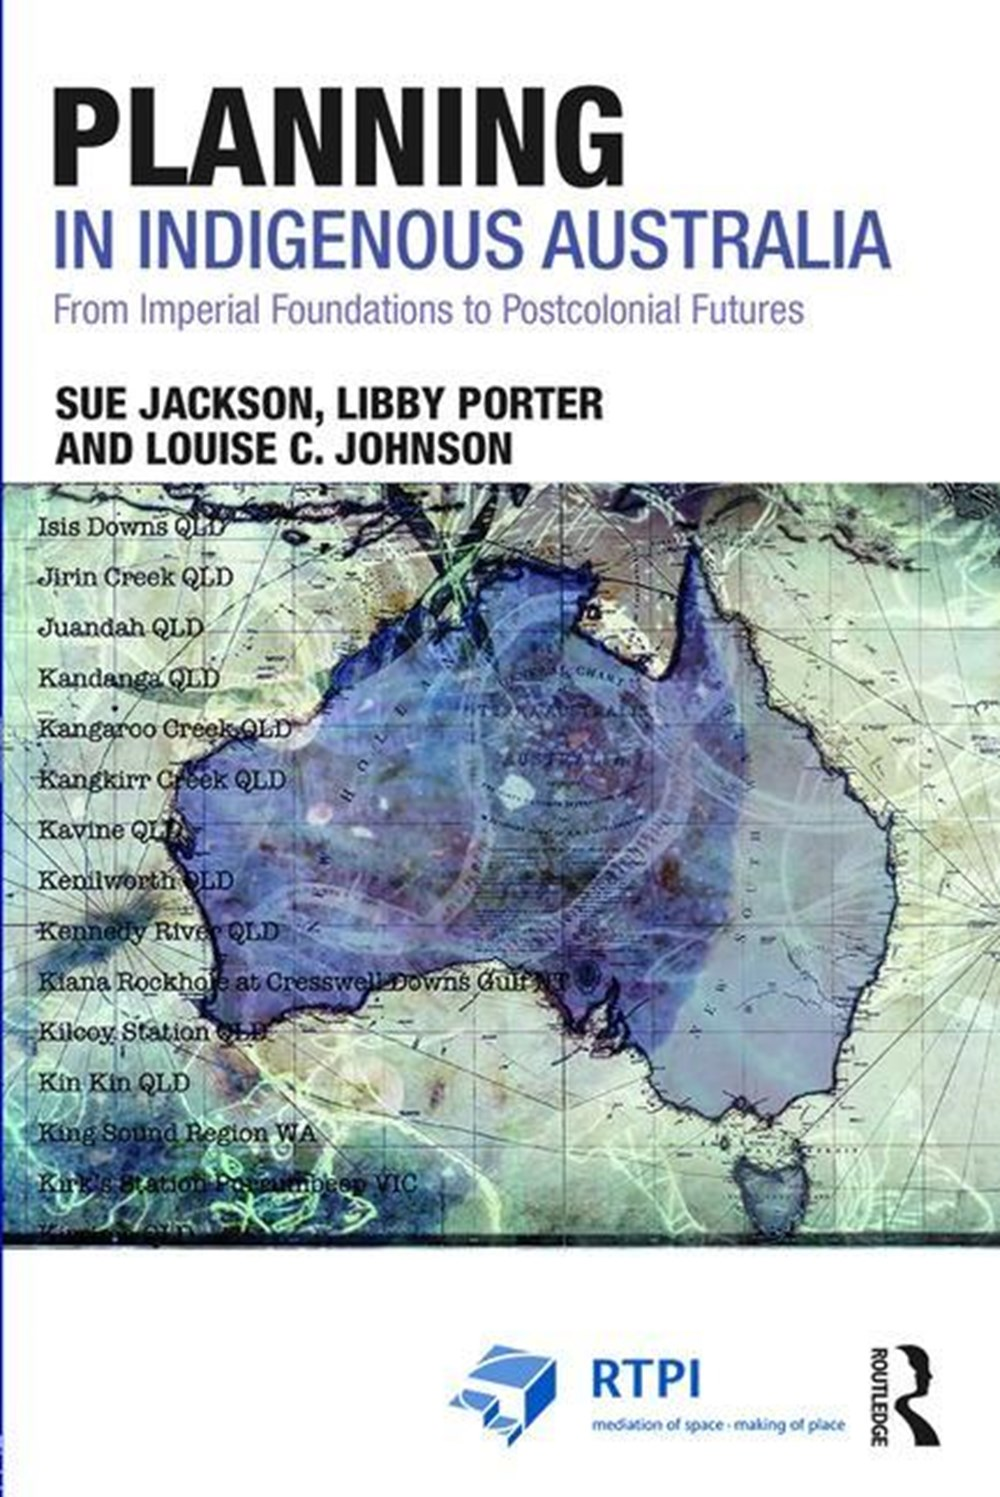 Planning in Indigenous Australia From Imperial Foundations to Postcolonial Futures